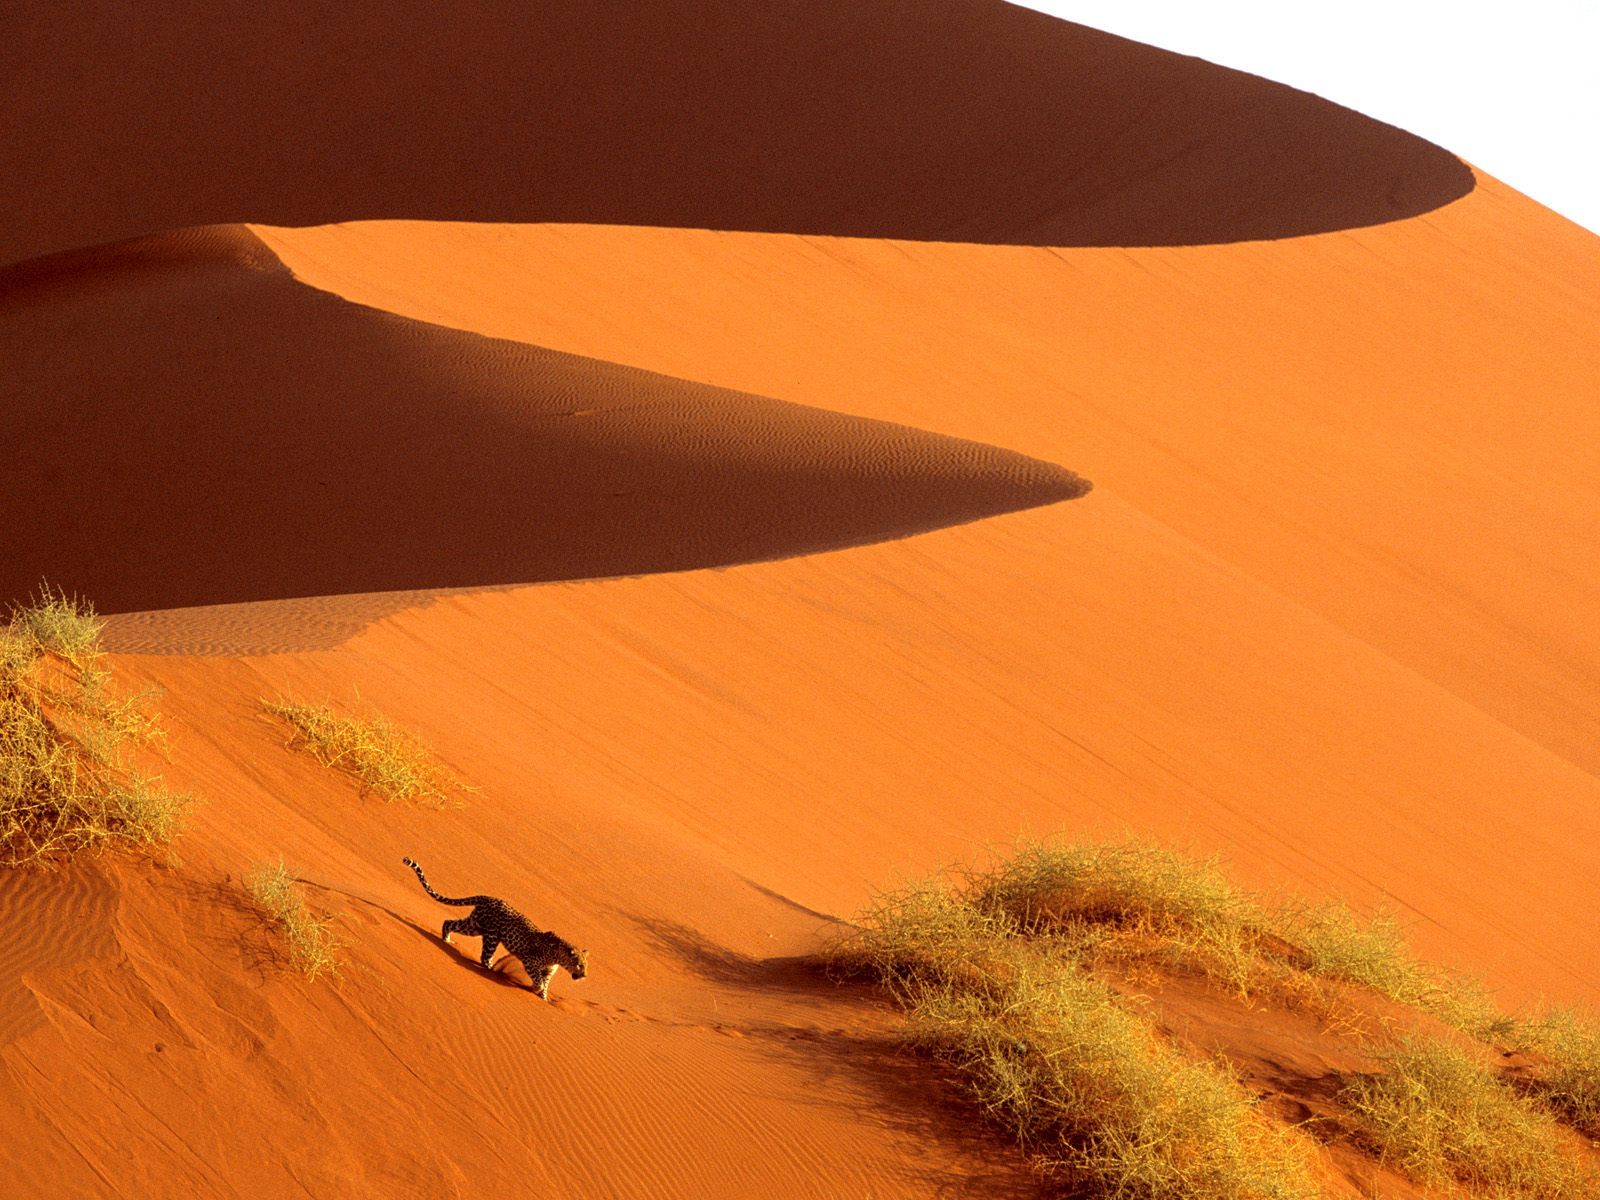 Crossing the Sand Dunes of Sossusvlei Park Namibia AfricaAfrica 1465